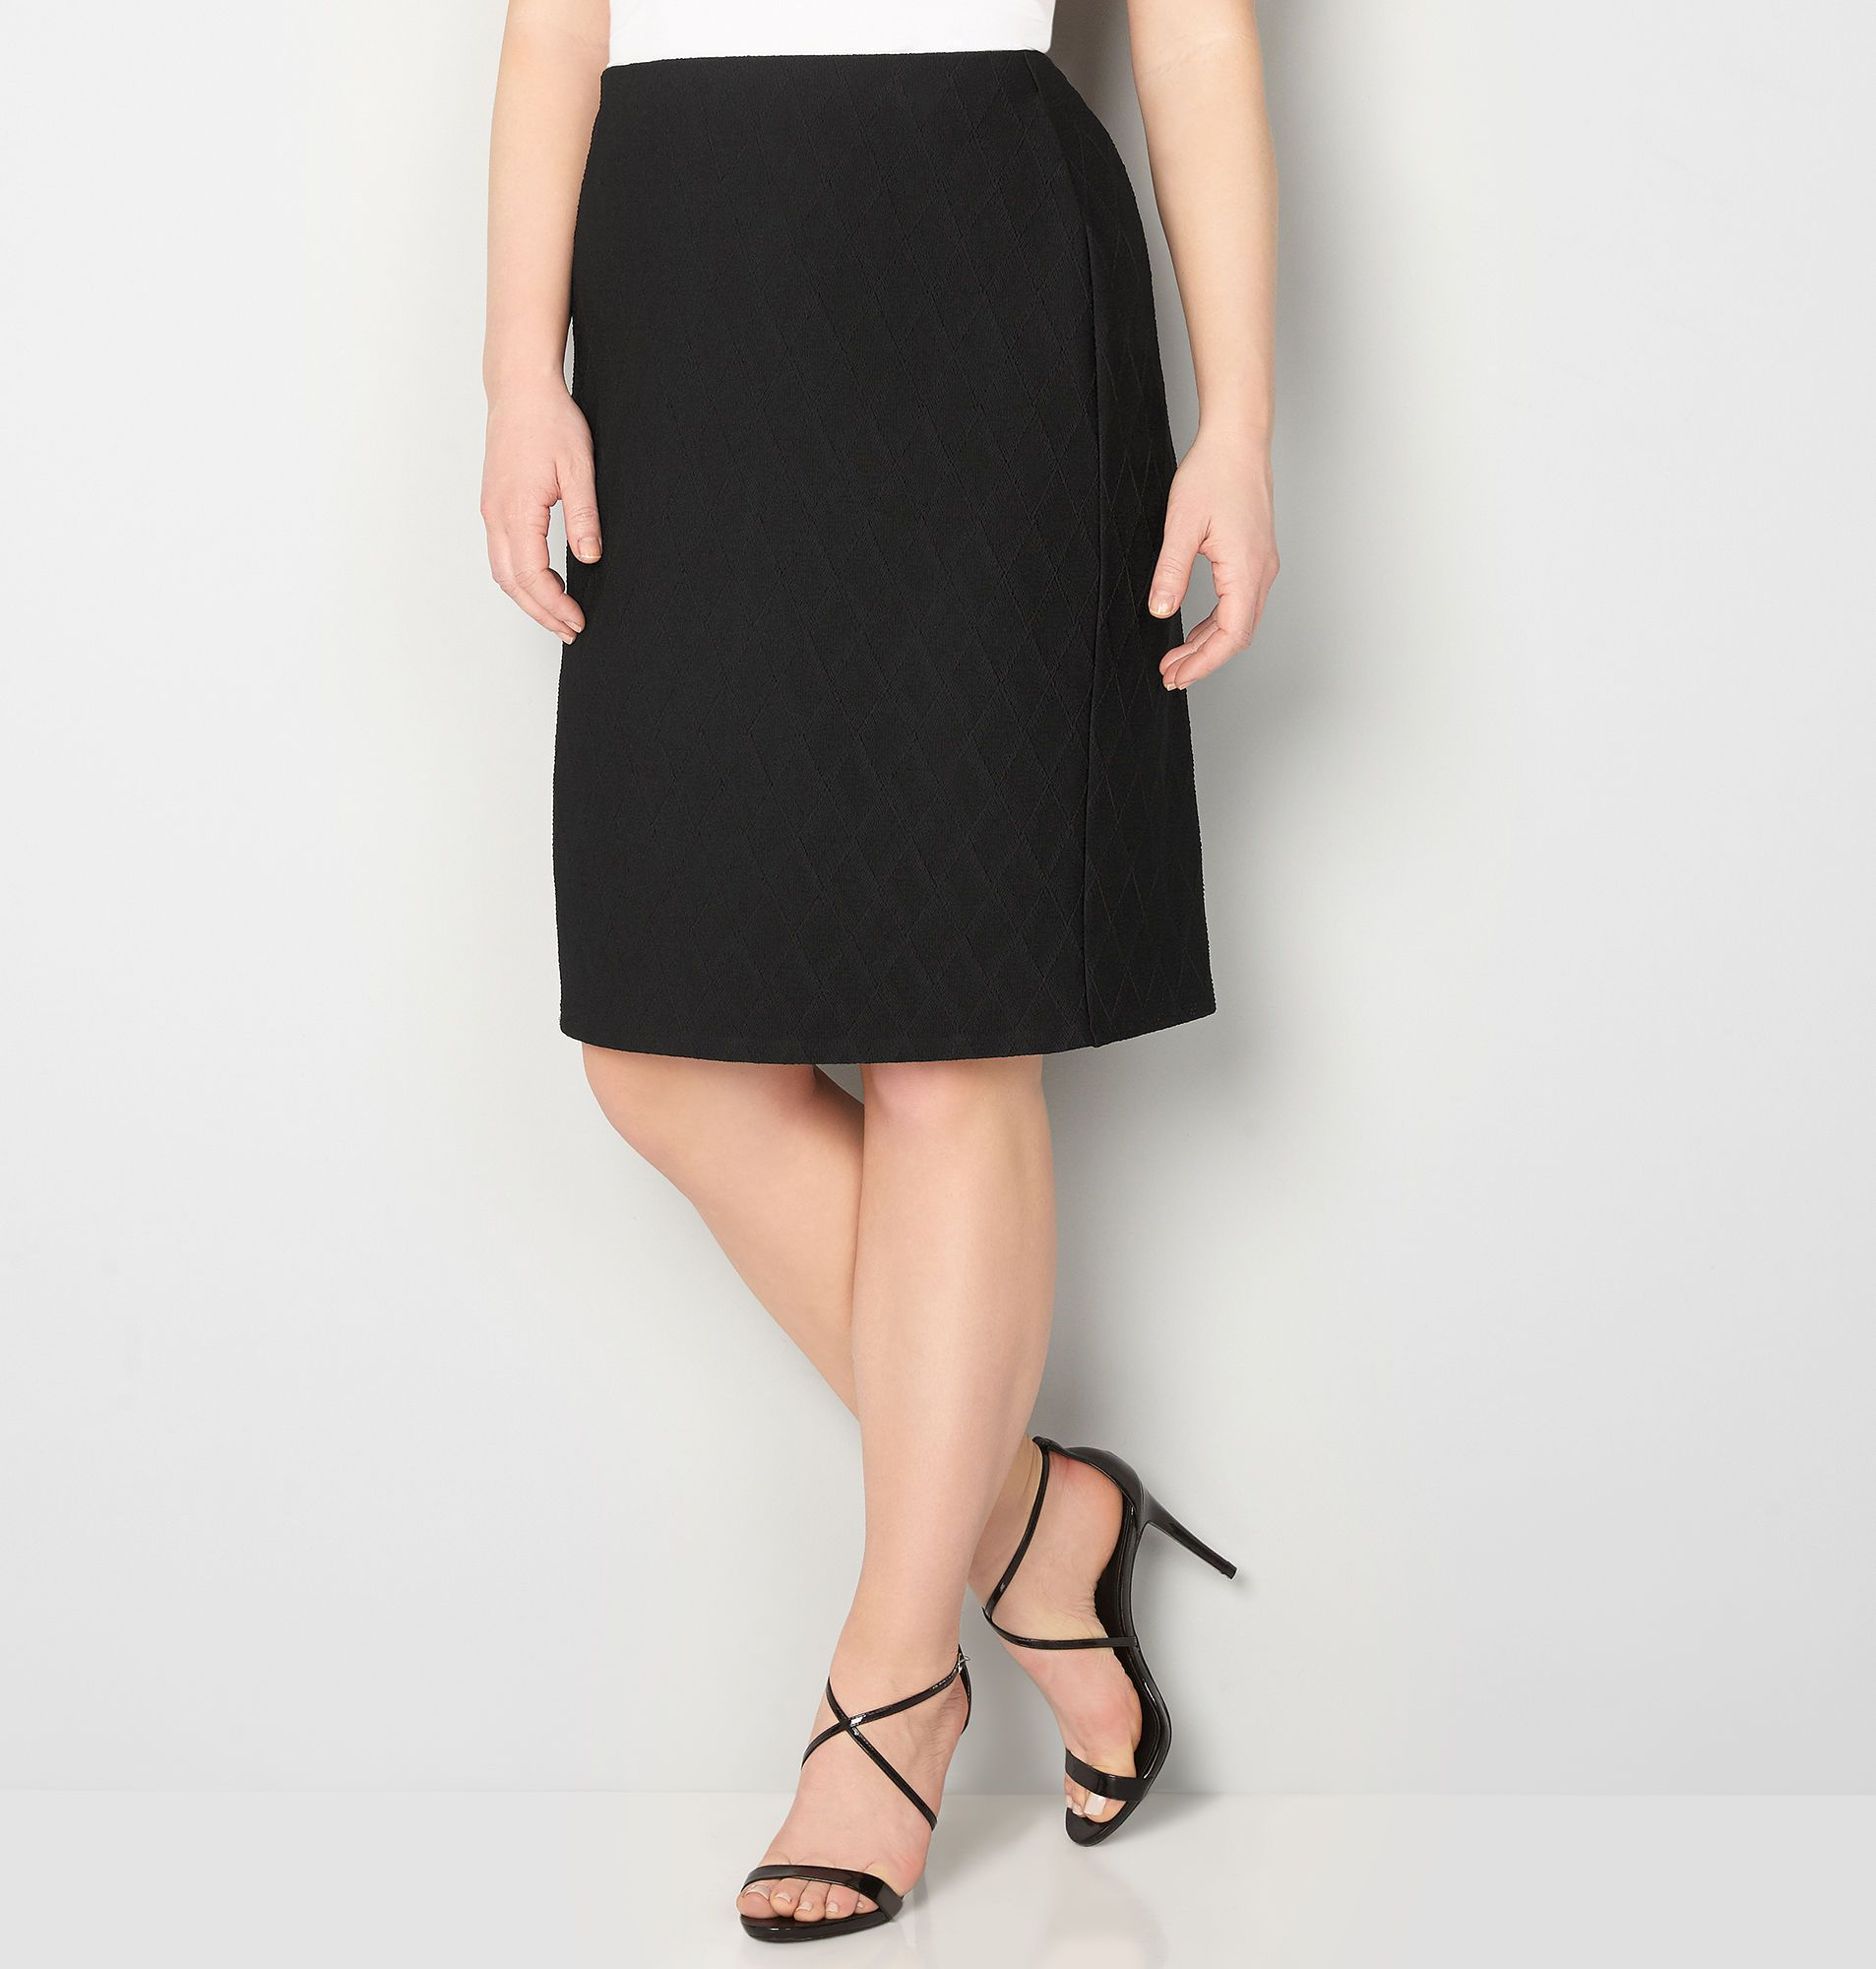 Amp up the style of a simple solid skirt with a chic diamond textured pattern all over. An elastic waistband makes this an easy wear while a slit at the back adds a sexy touch.    Polyester/spandex. Machine wash. Imported.  Approx. 25 inches long.